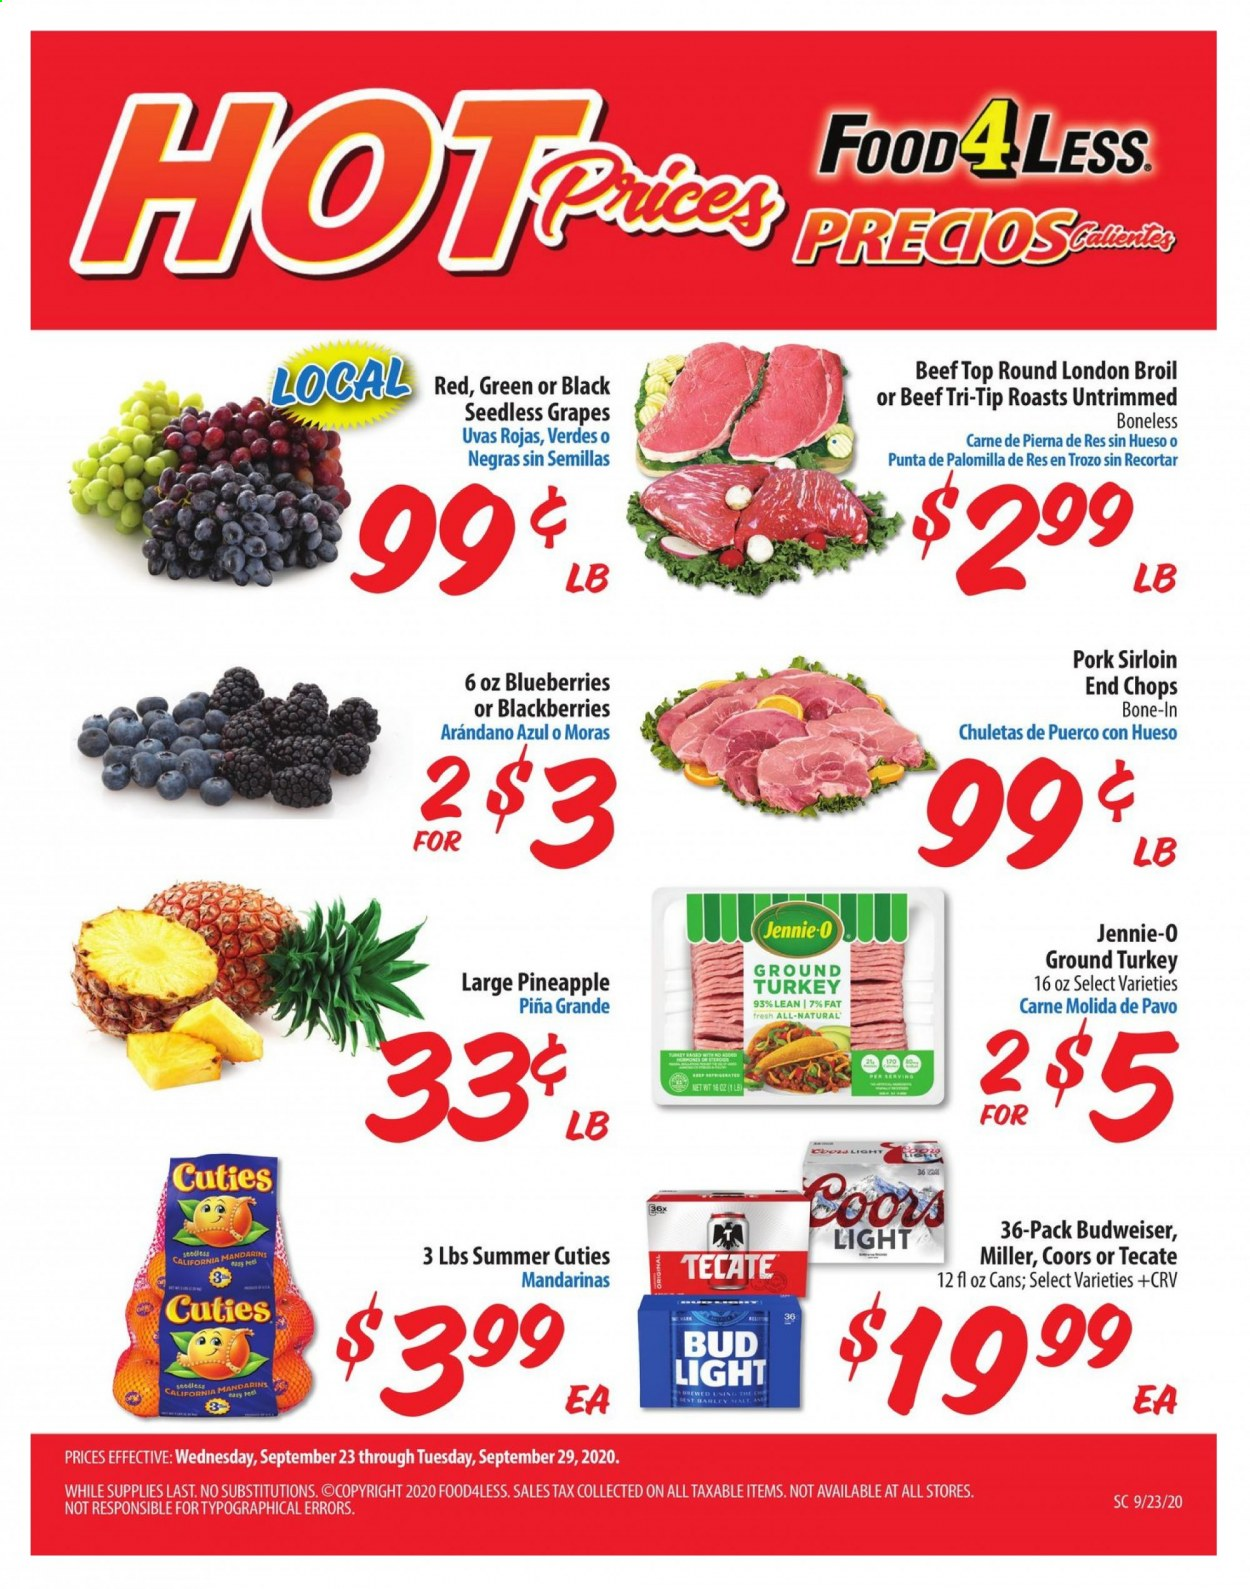 Food 4 Less Flyer - 09.23.2020 - 09.29.2020 - Sales products - Budweiser, Bud Light, Coors, blackberries, blueberries, grapes, seedless grapes, pineapple, barley, ground turkey, turkey, beef meat, pork meat. Page 1.